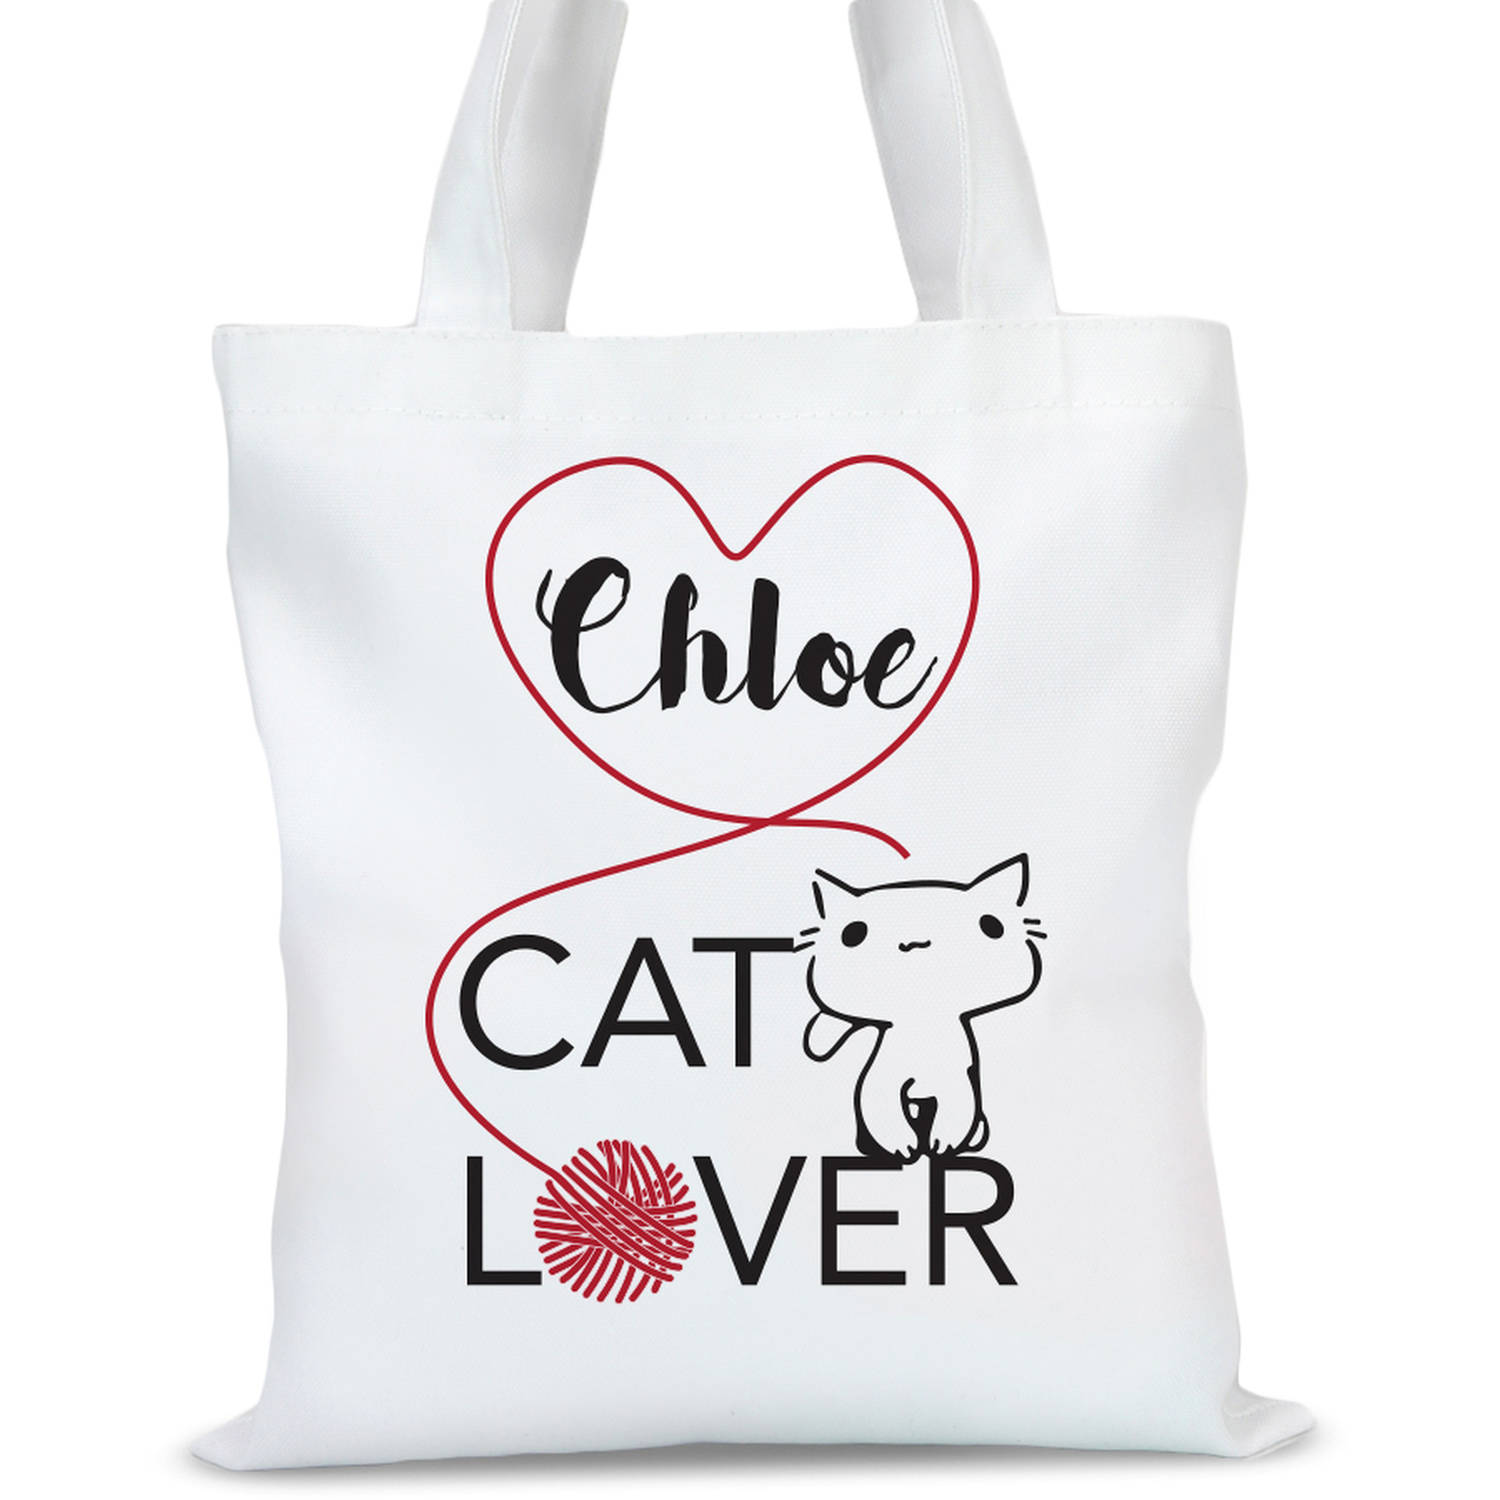 """Personalized Cat Lover Tote Bag, Sizes 11"""" x 14"""" and 14.5"""" x 18"""""""